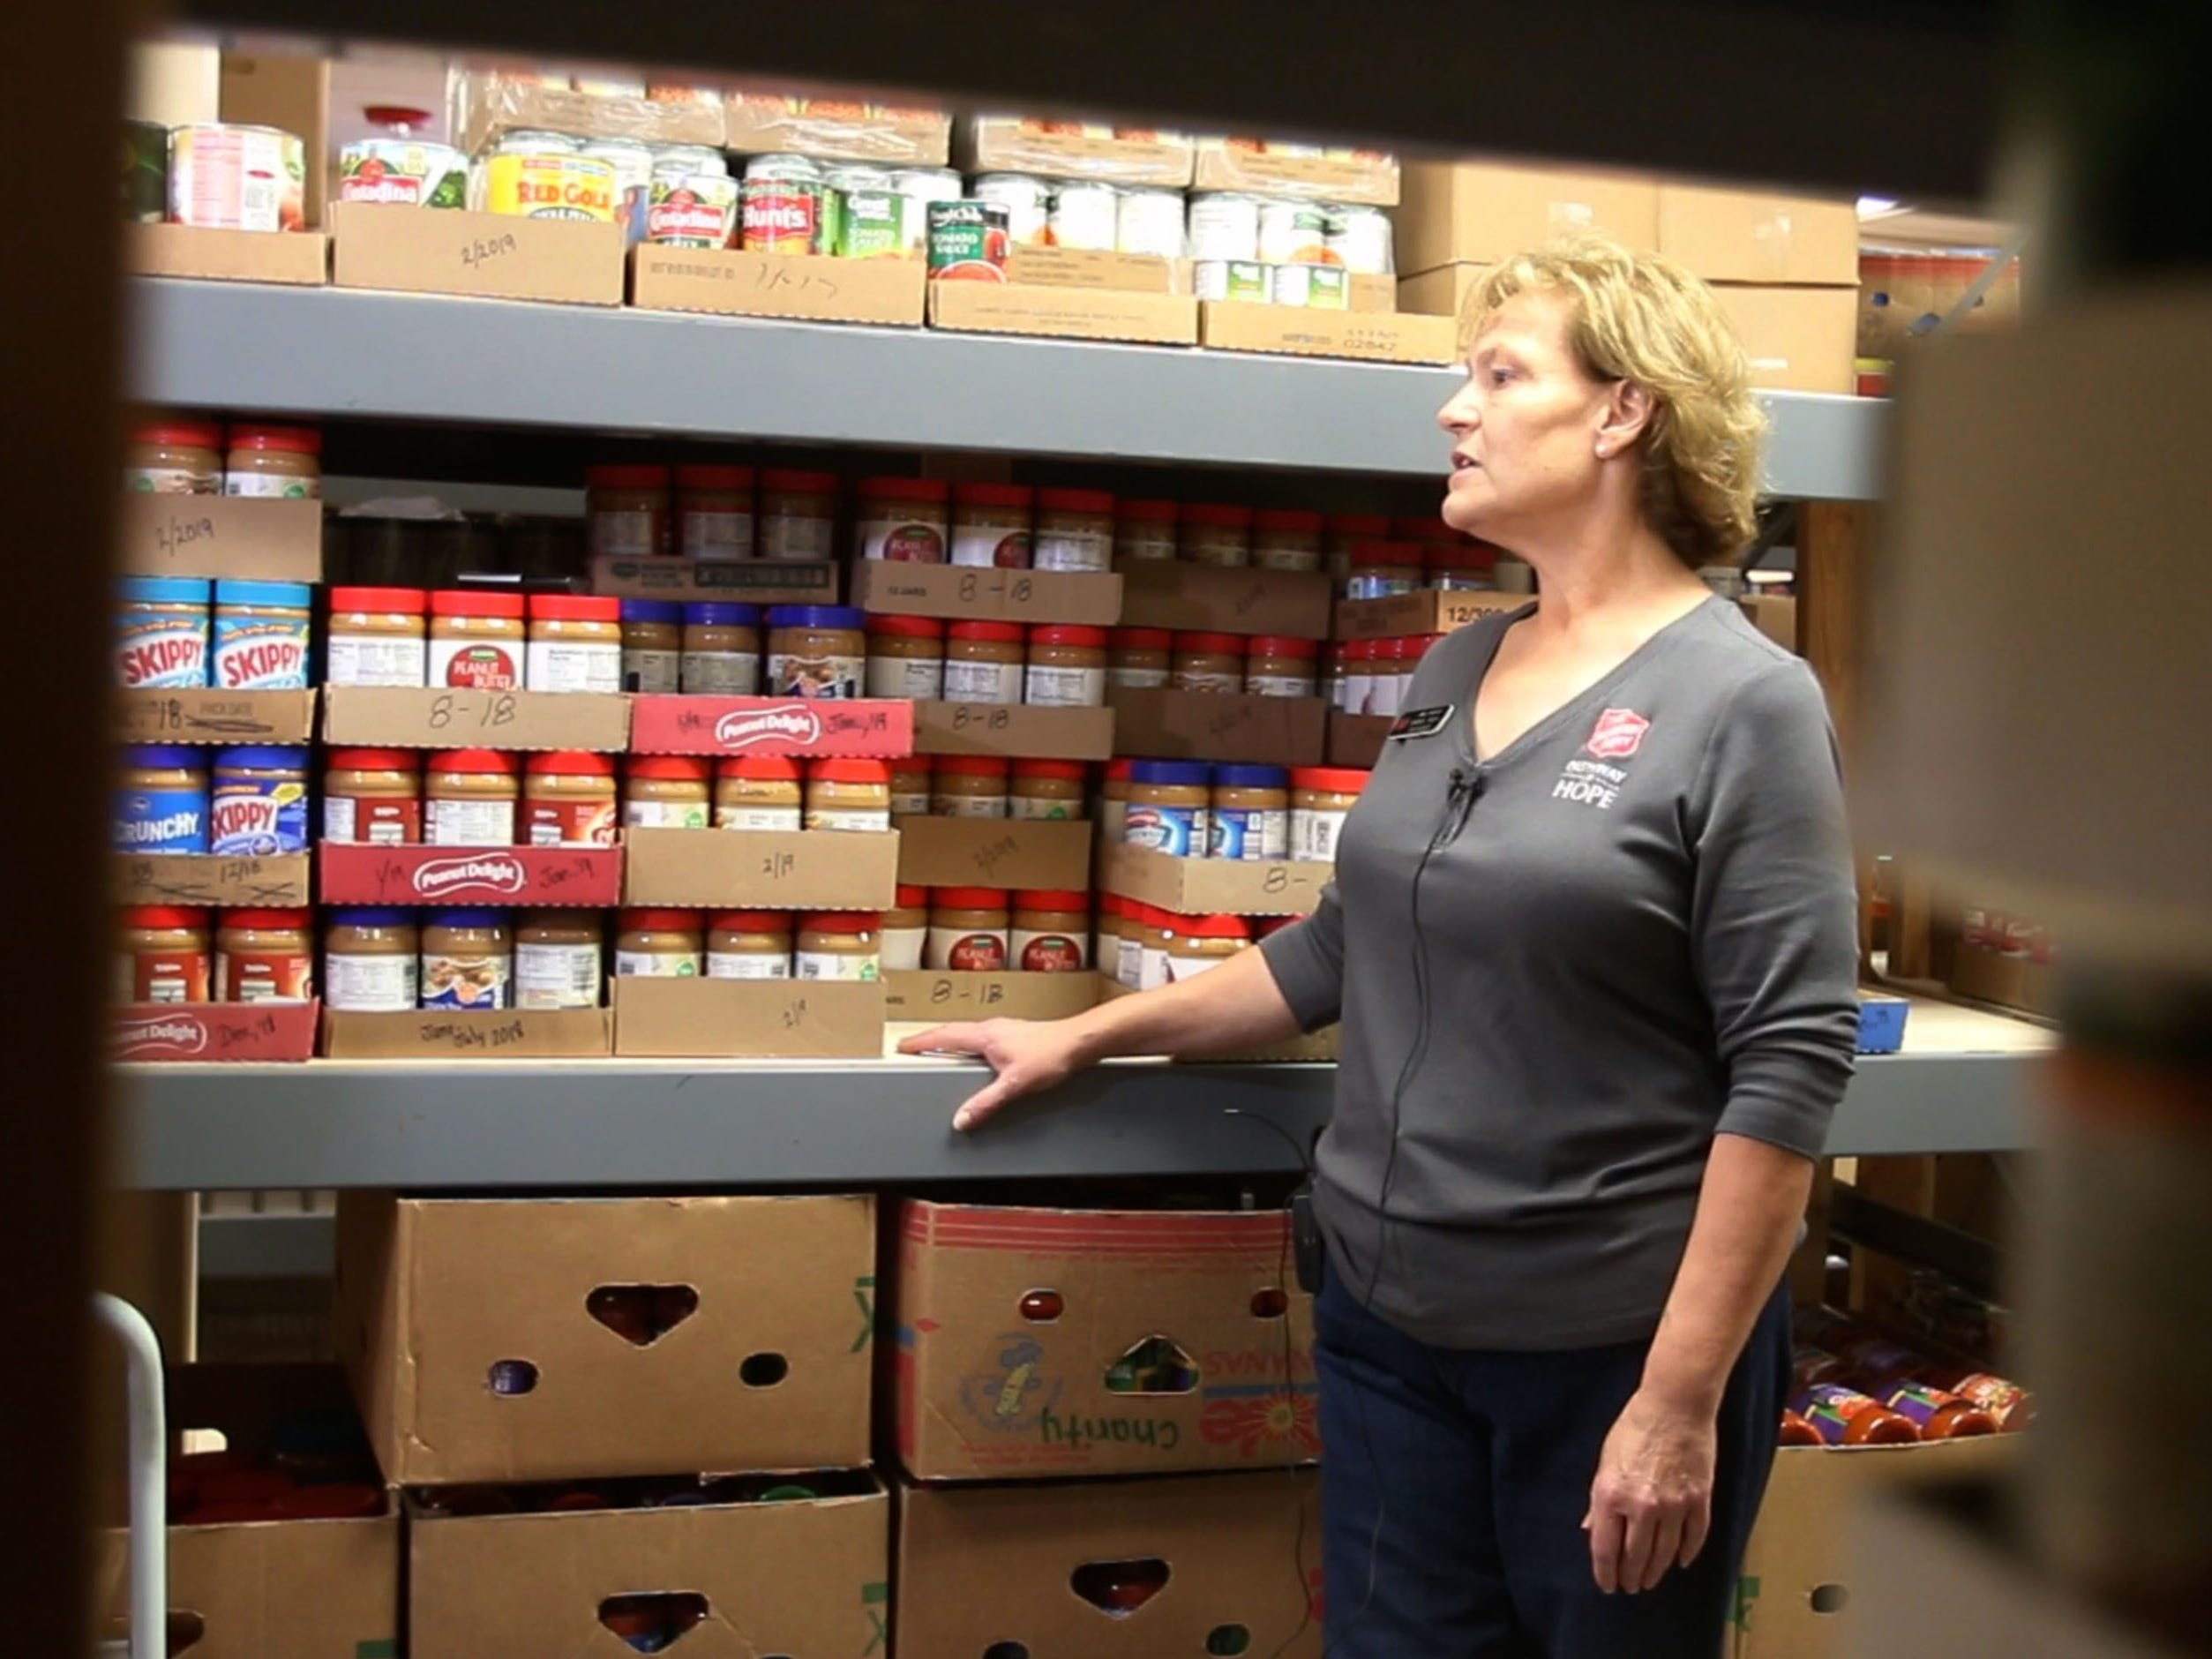 Salvation Army General Needs Case Worker Jane Marotz, speaks to the media while standing near the shelves in the food pantry at the facility Sept. 20 in Sheboygan, Wis.